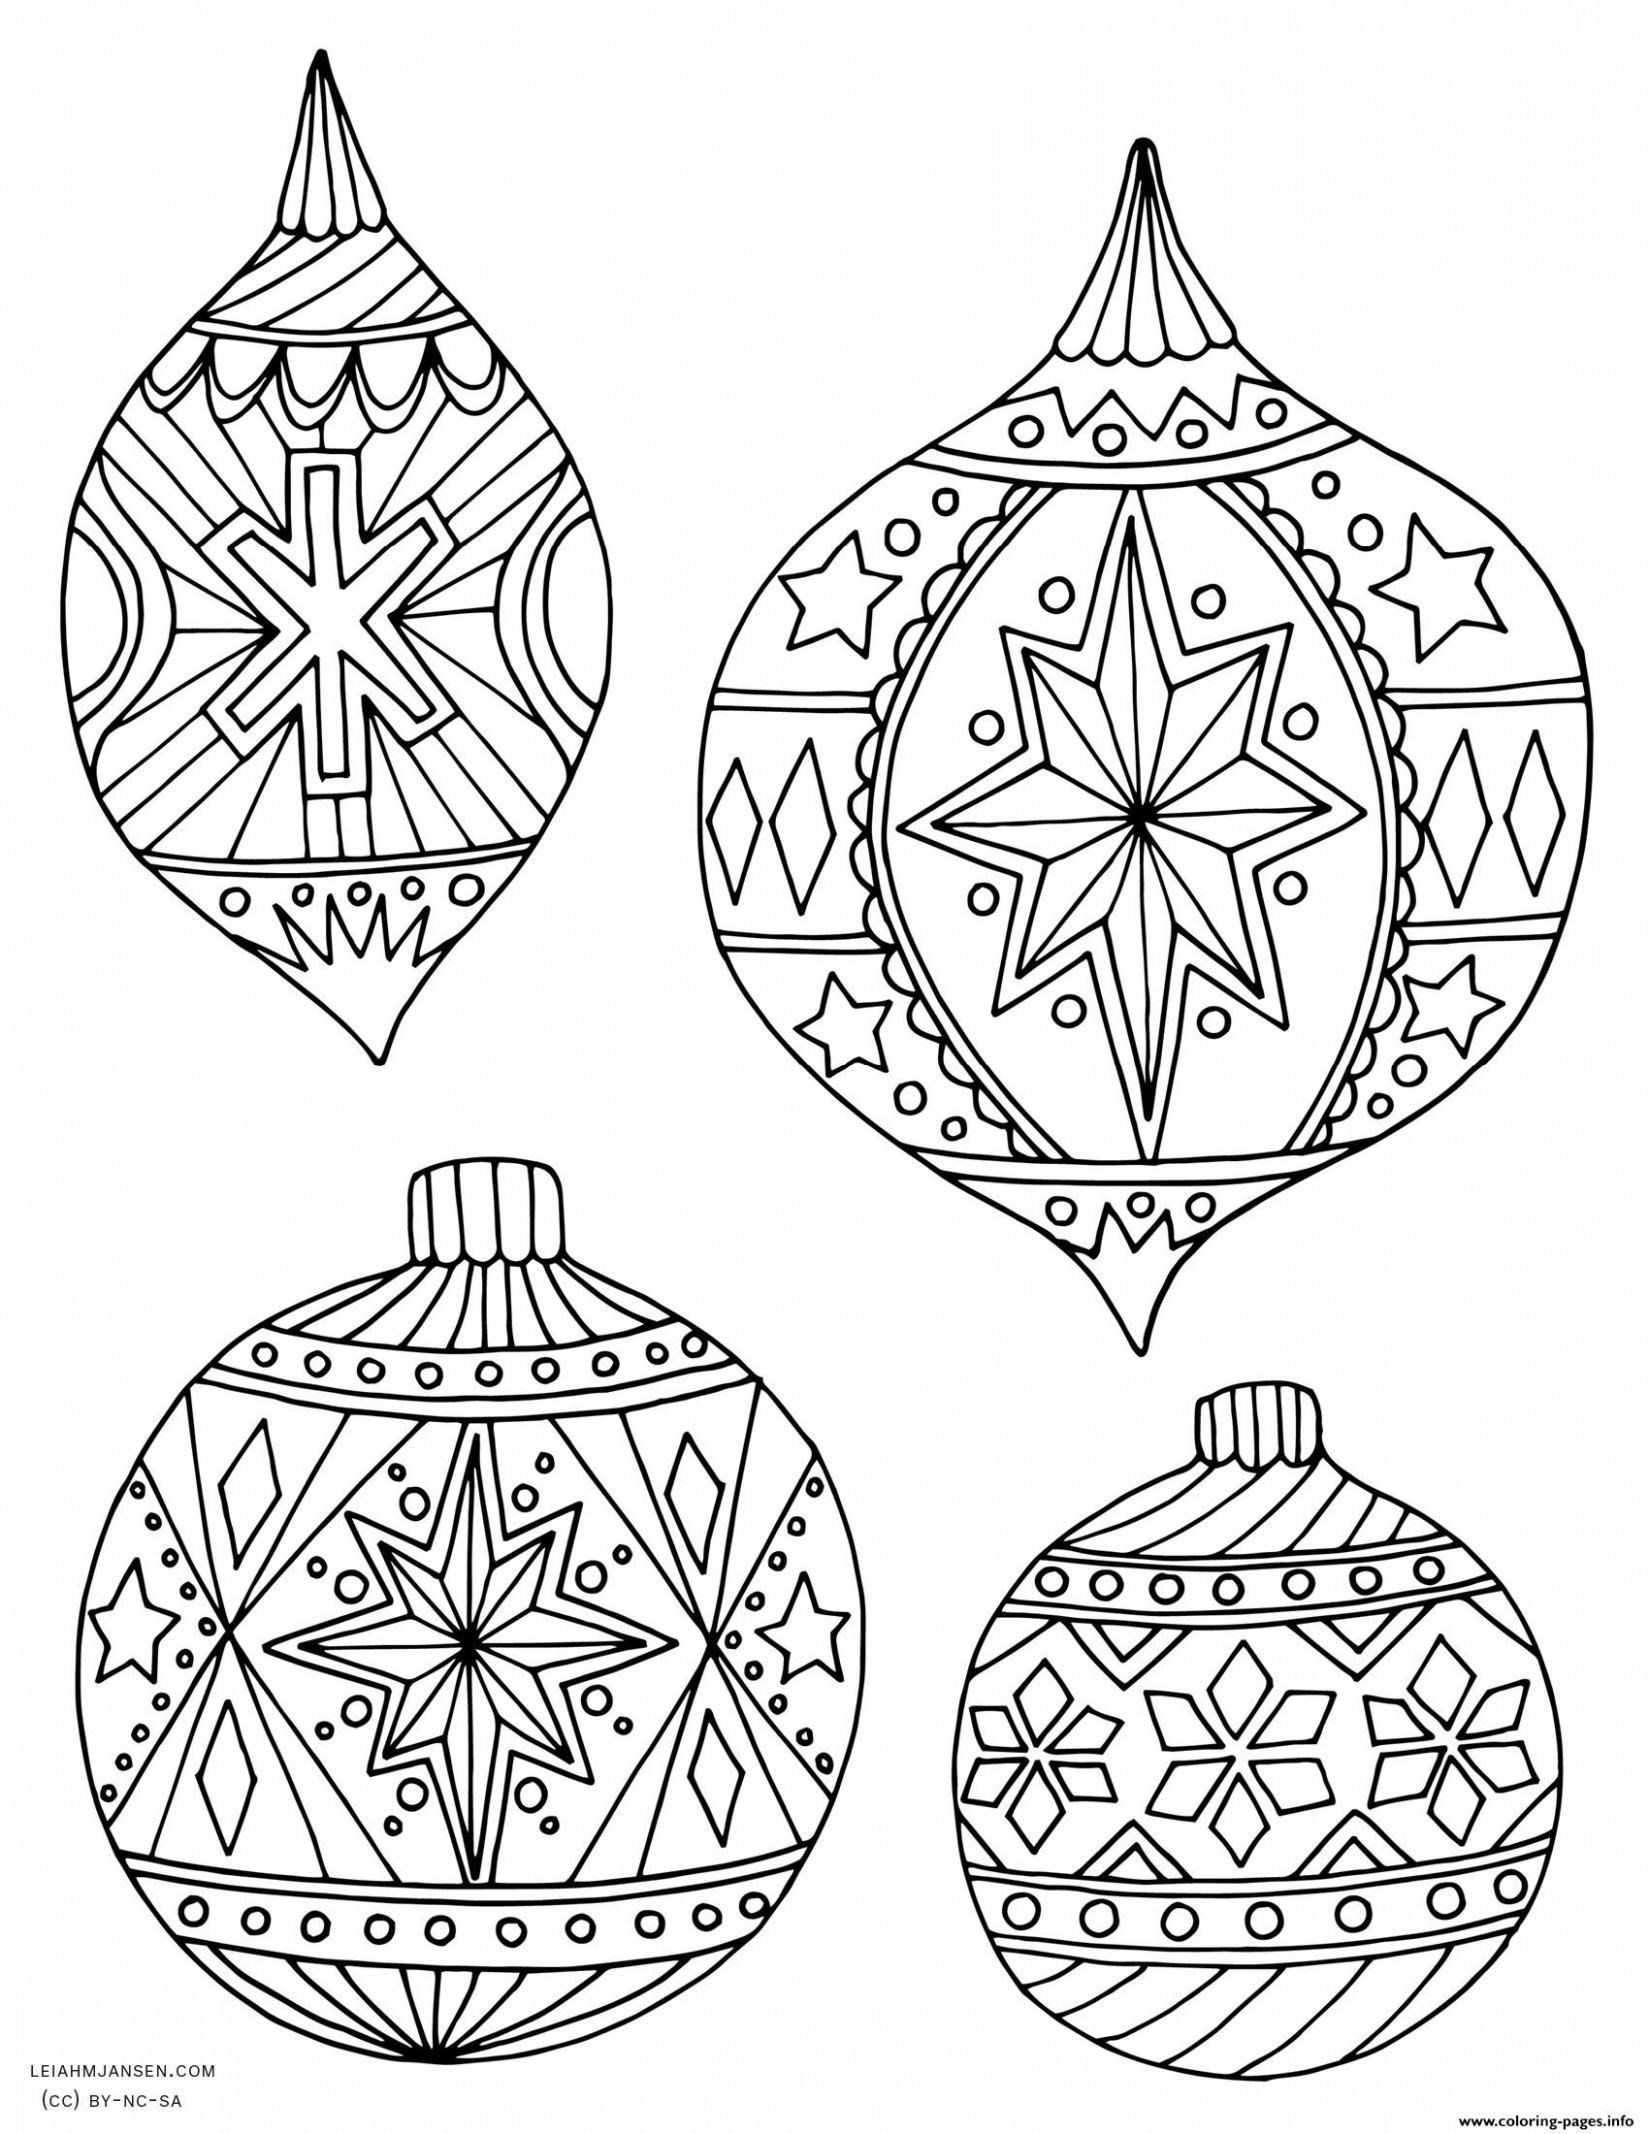 Coloring Ideas : 15adult Christmas Holiday Ornaments Adult ...